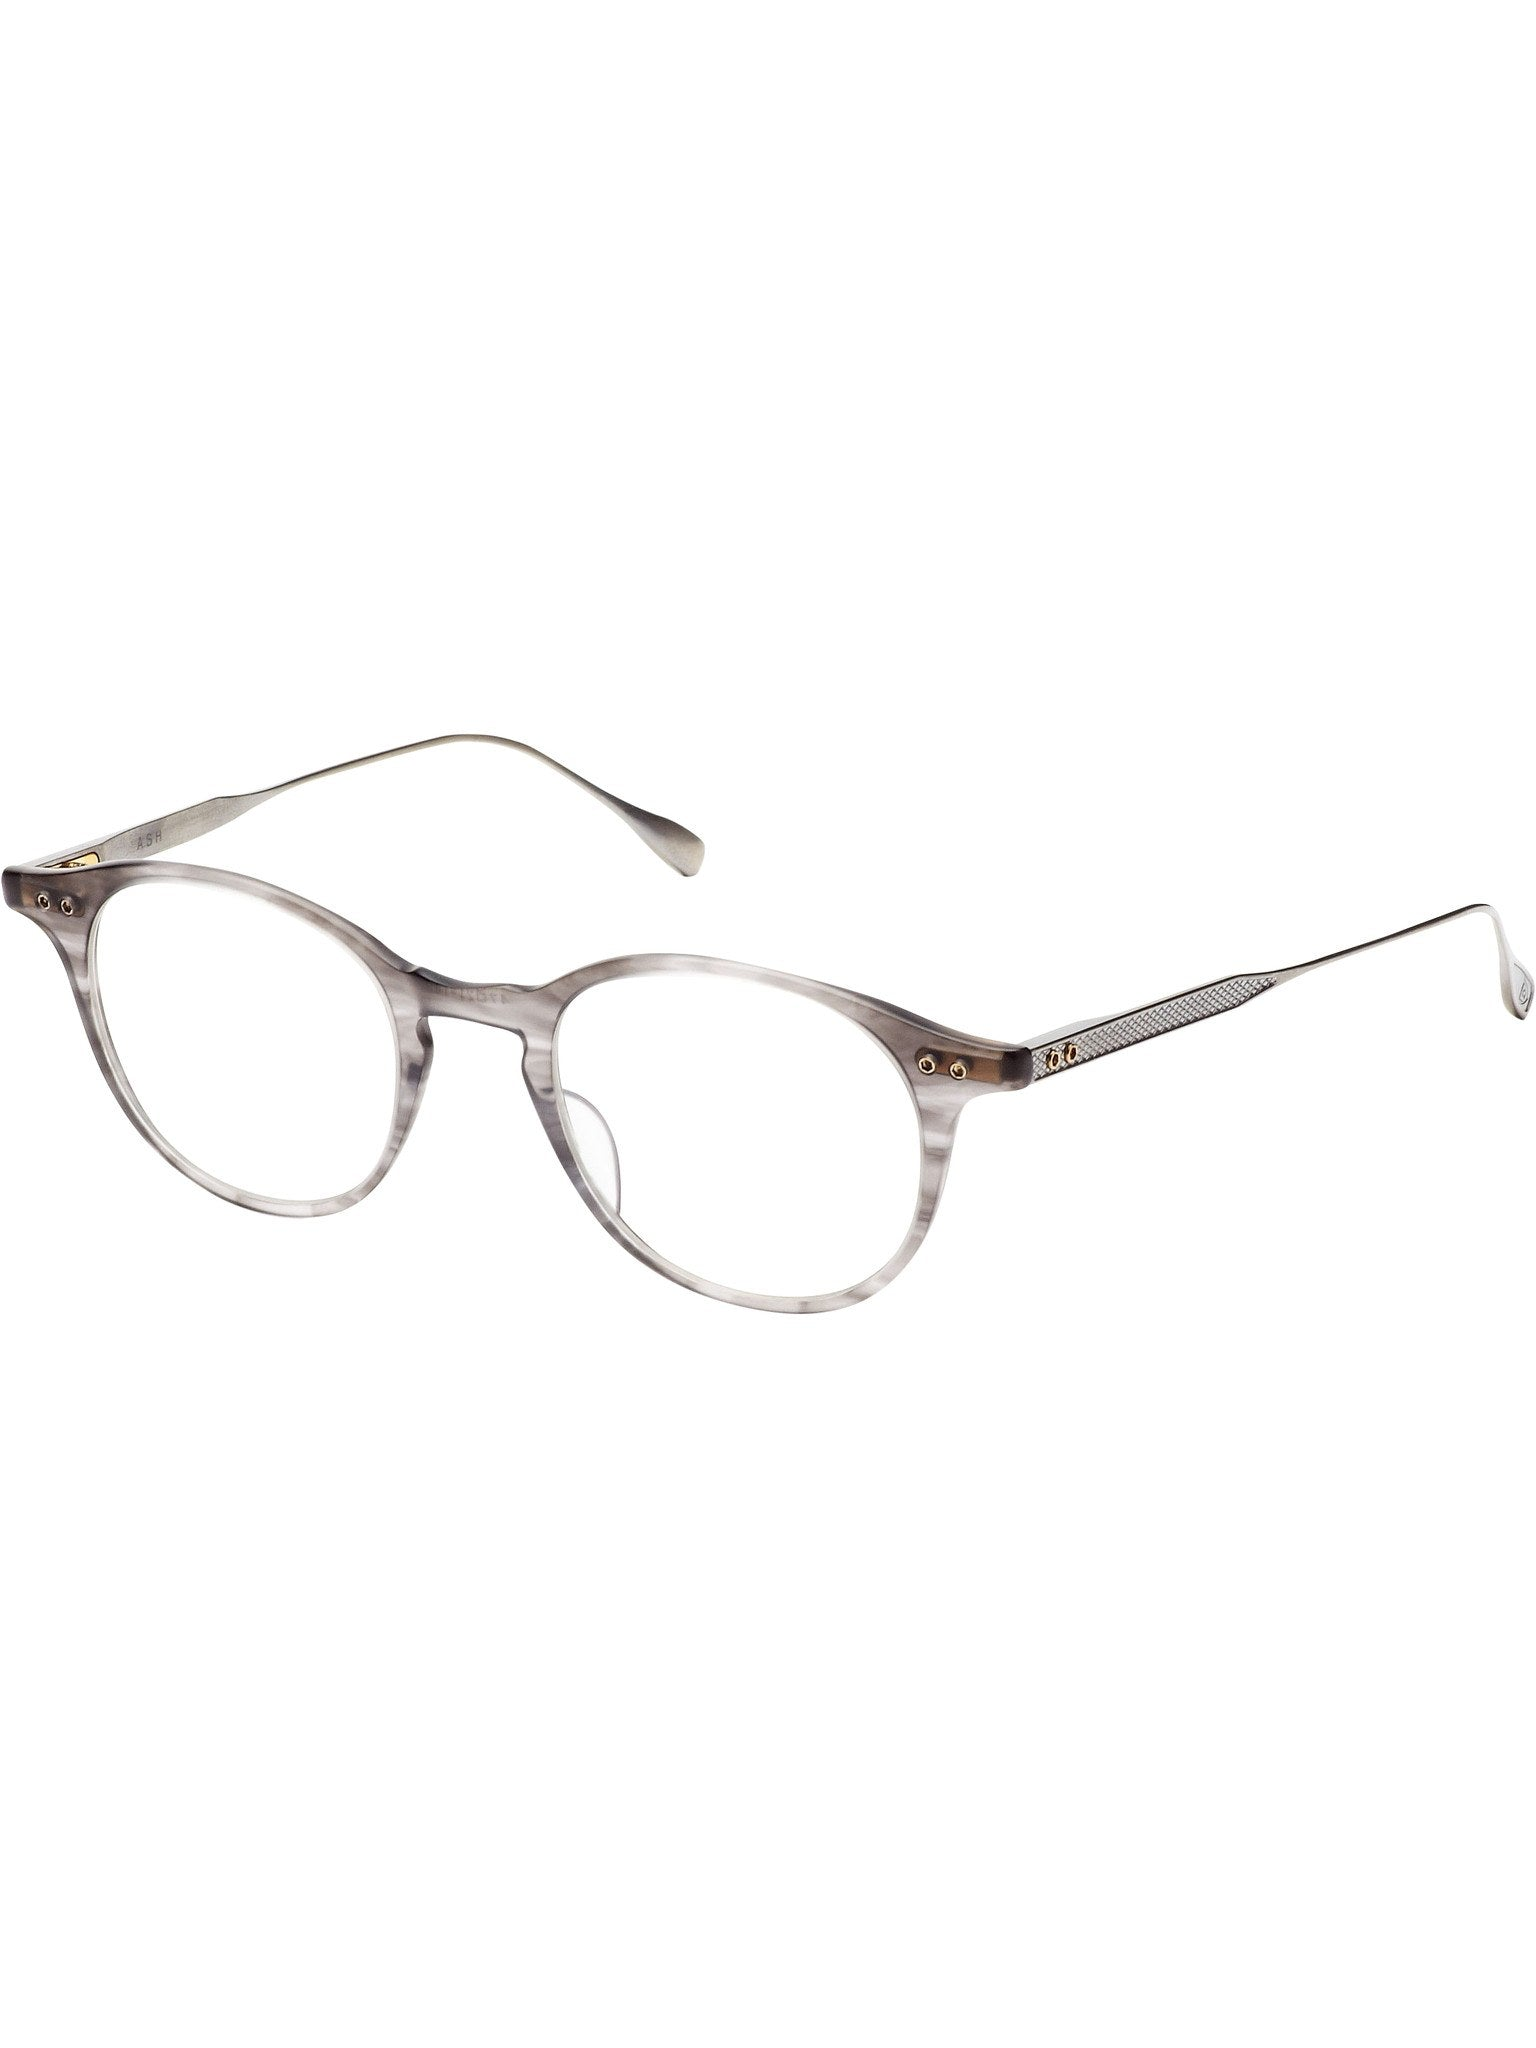 Optical Frame - Dita Ash DRX-2073-C Glasses